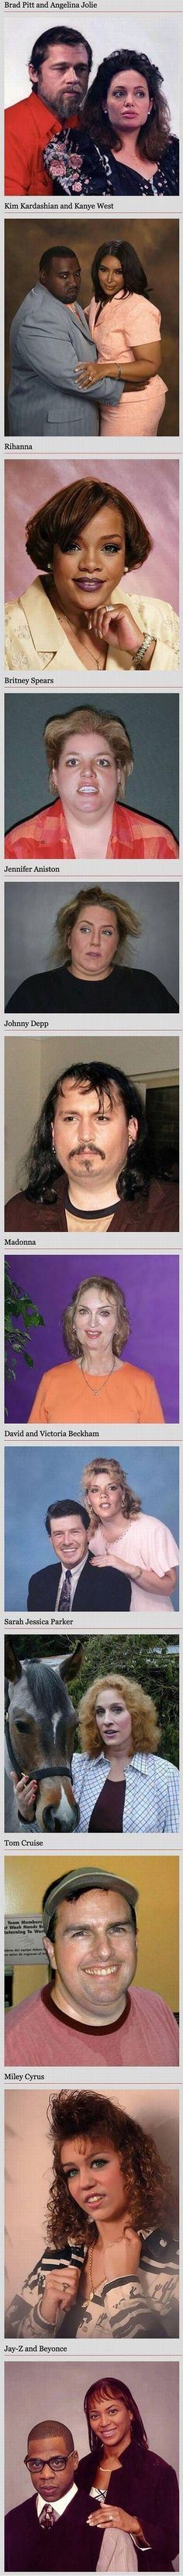 Celebrities as casual people, can't stop laughing ...